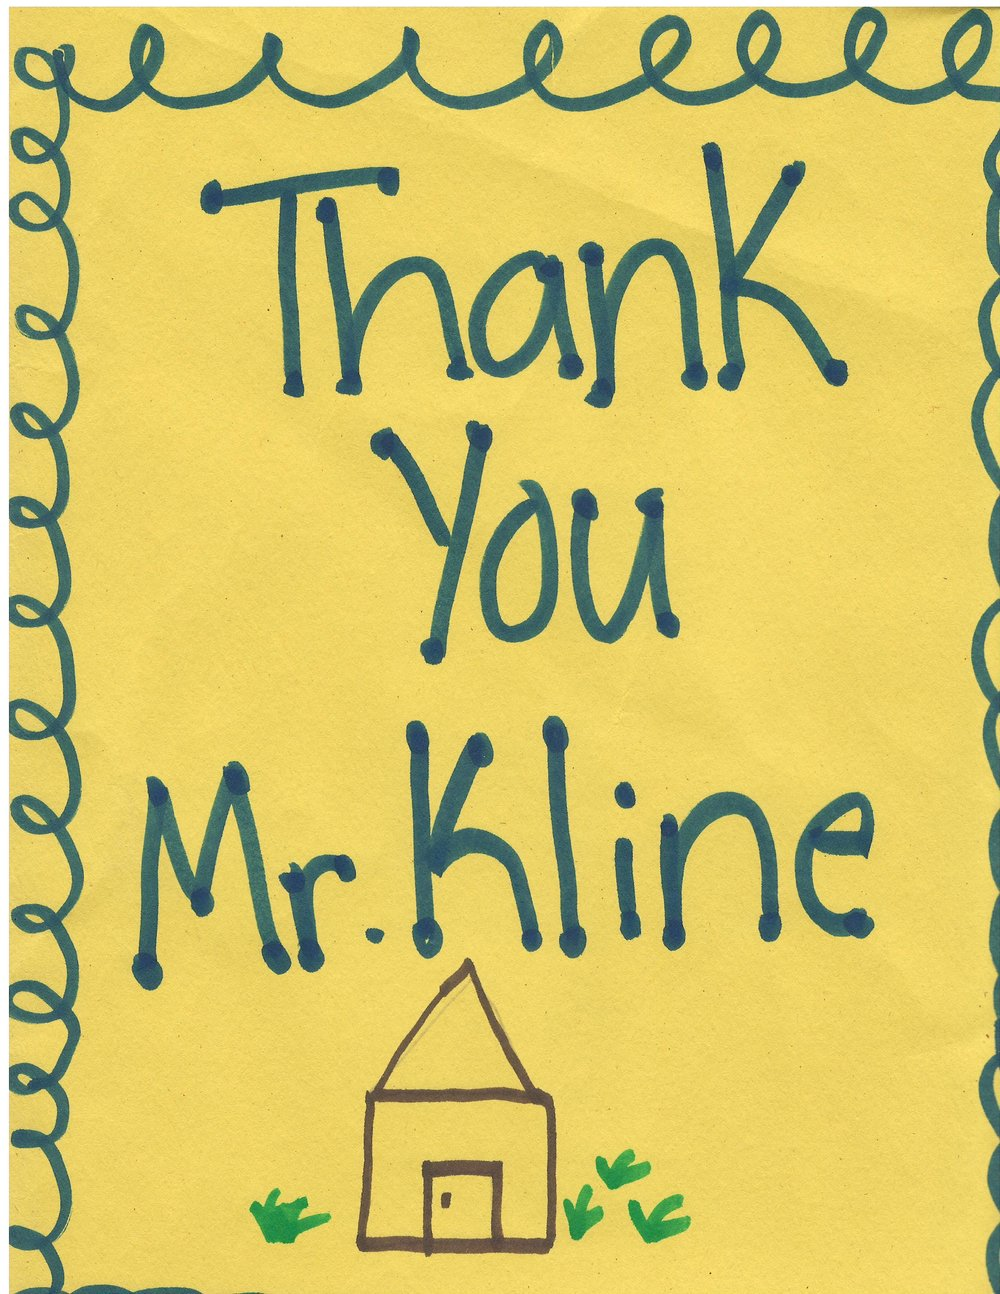 A warm thank you from the students at Waugh Chapel Elementary School who welcomed me to their recent Career Day event!